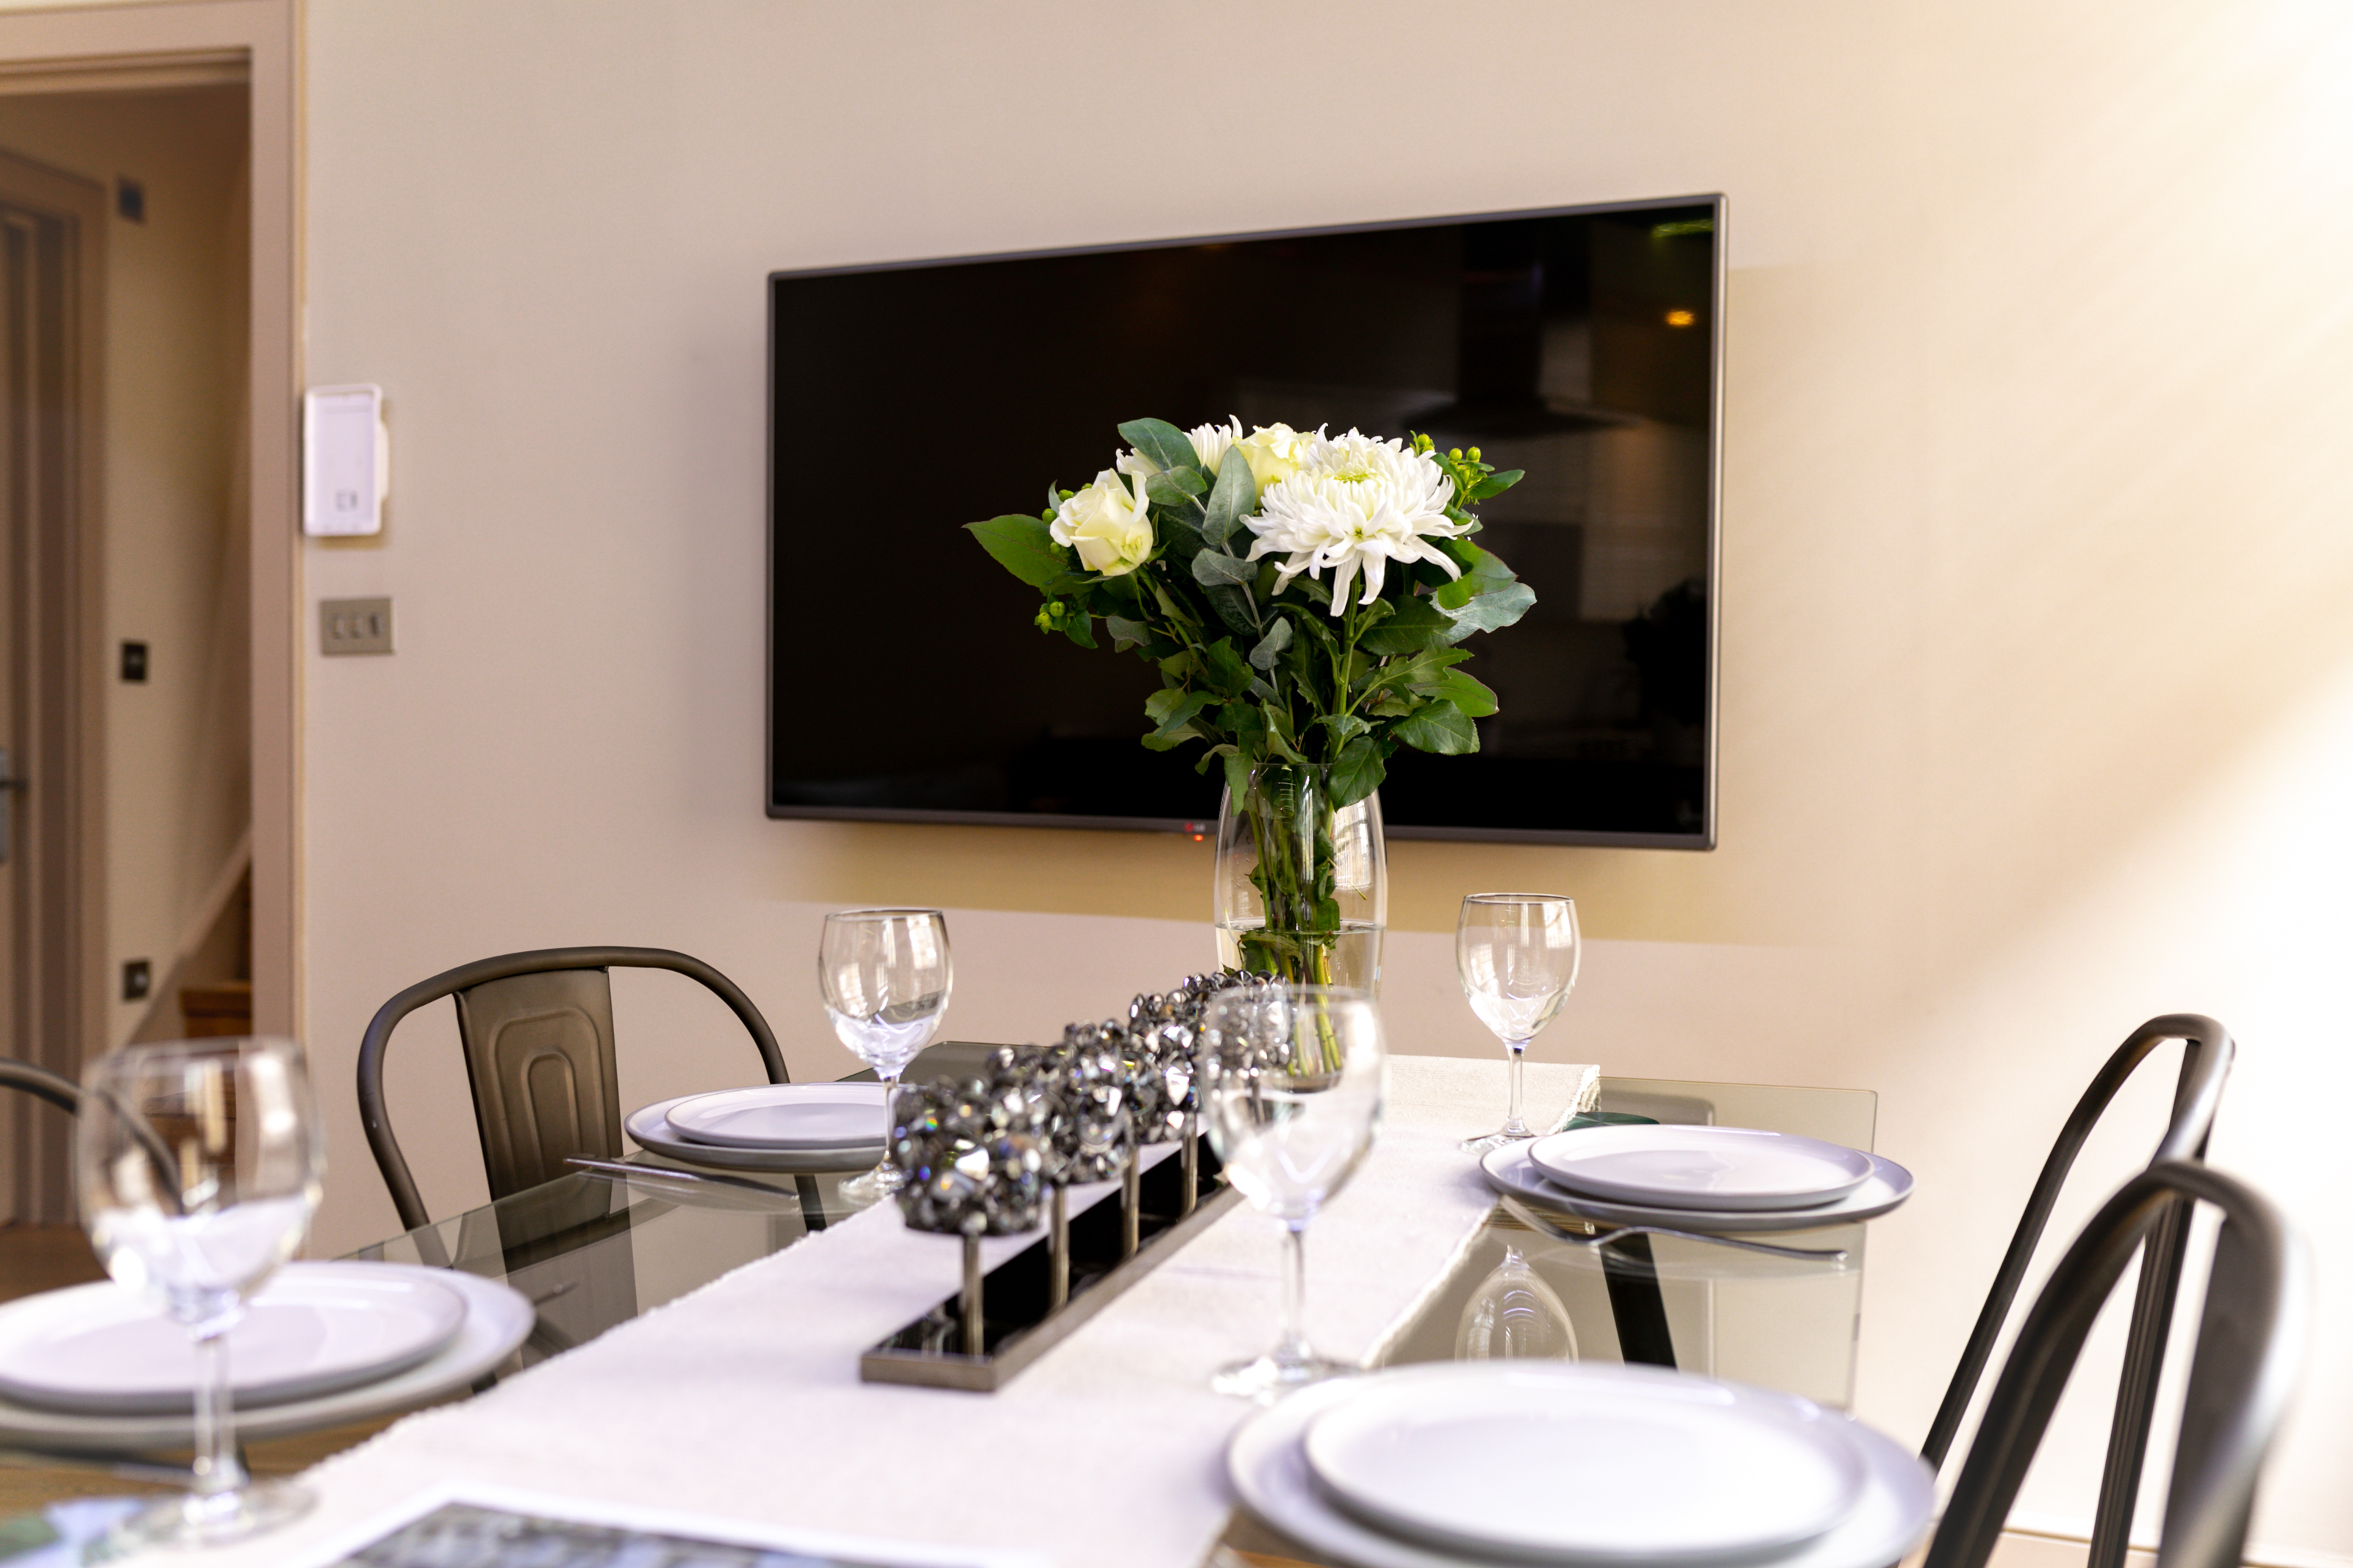 Lovelydays luxury service apartment rental - London - Fitzrovia - Wells Mews A - Lovelysuite - 2 bedrooms - 2 bathrooms - Dining living room - 5 star serviced apartments in london - 31895eb6046f - Lovelydays